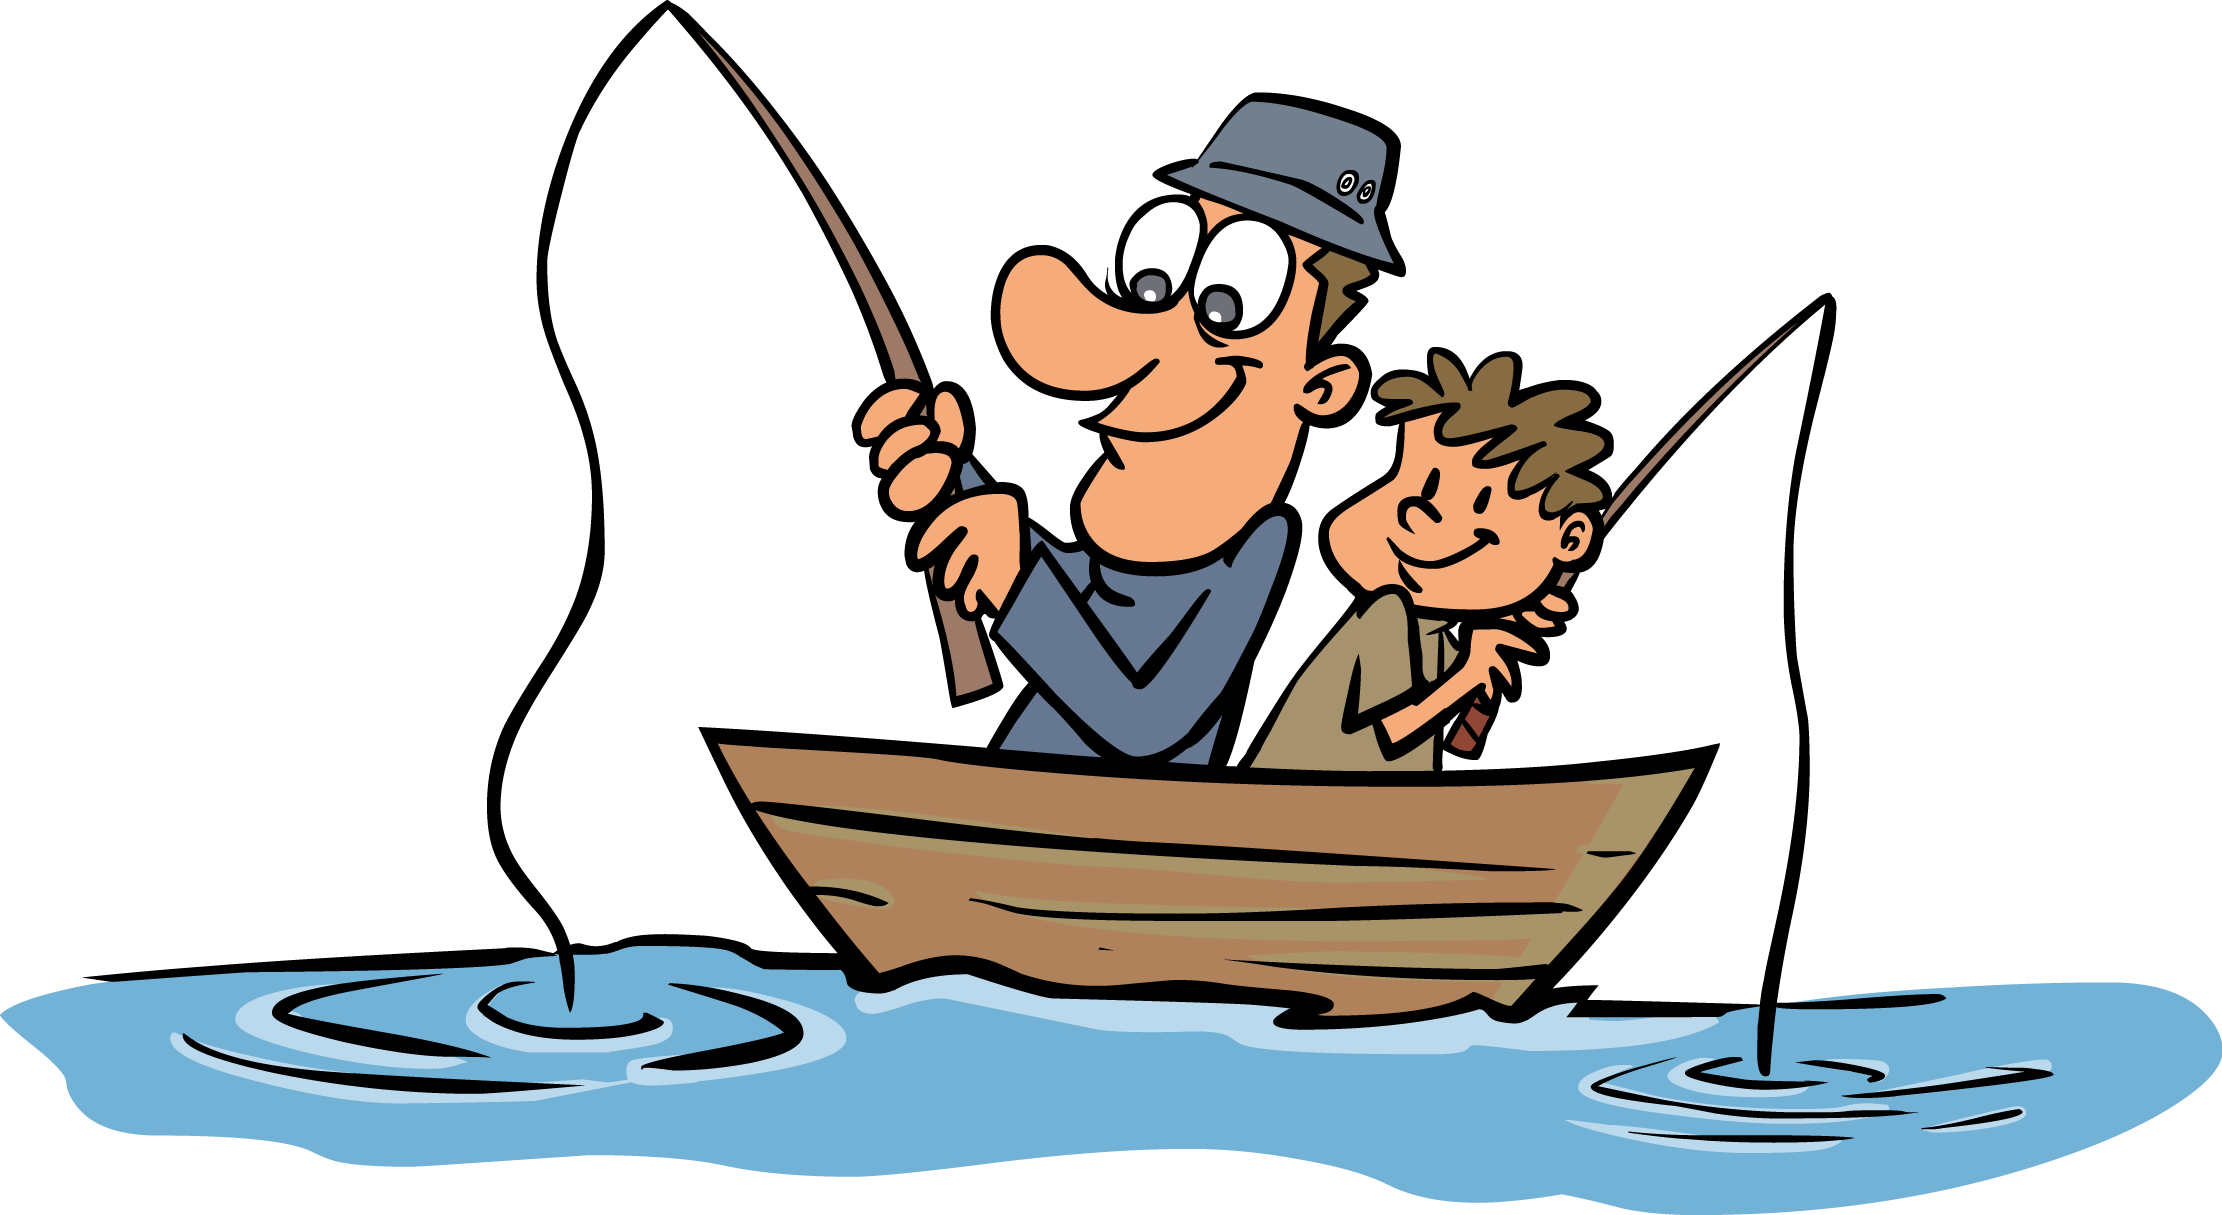 Funny Fisherman Cartoon - ClipArt Best